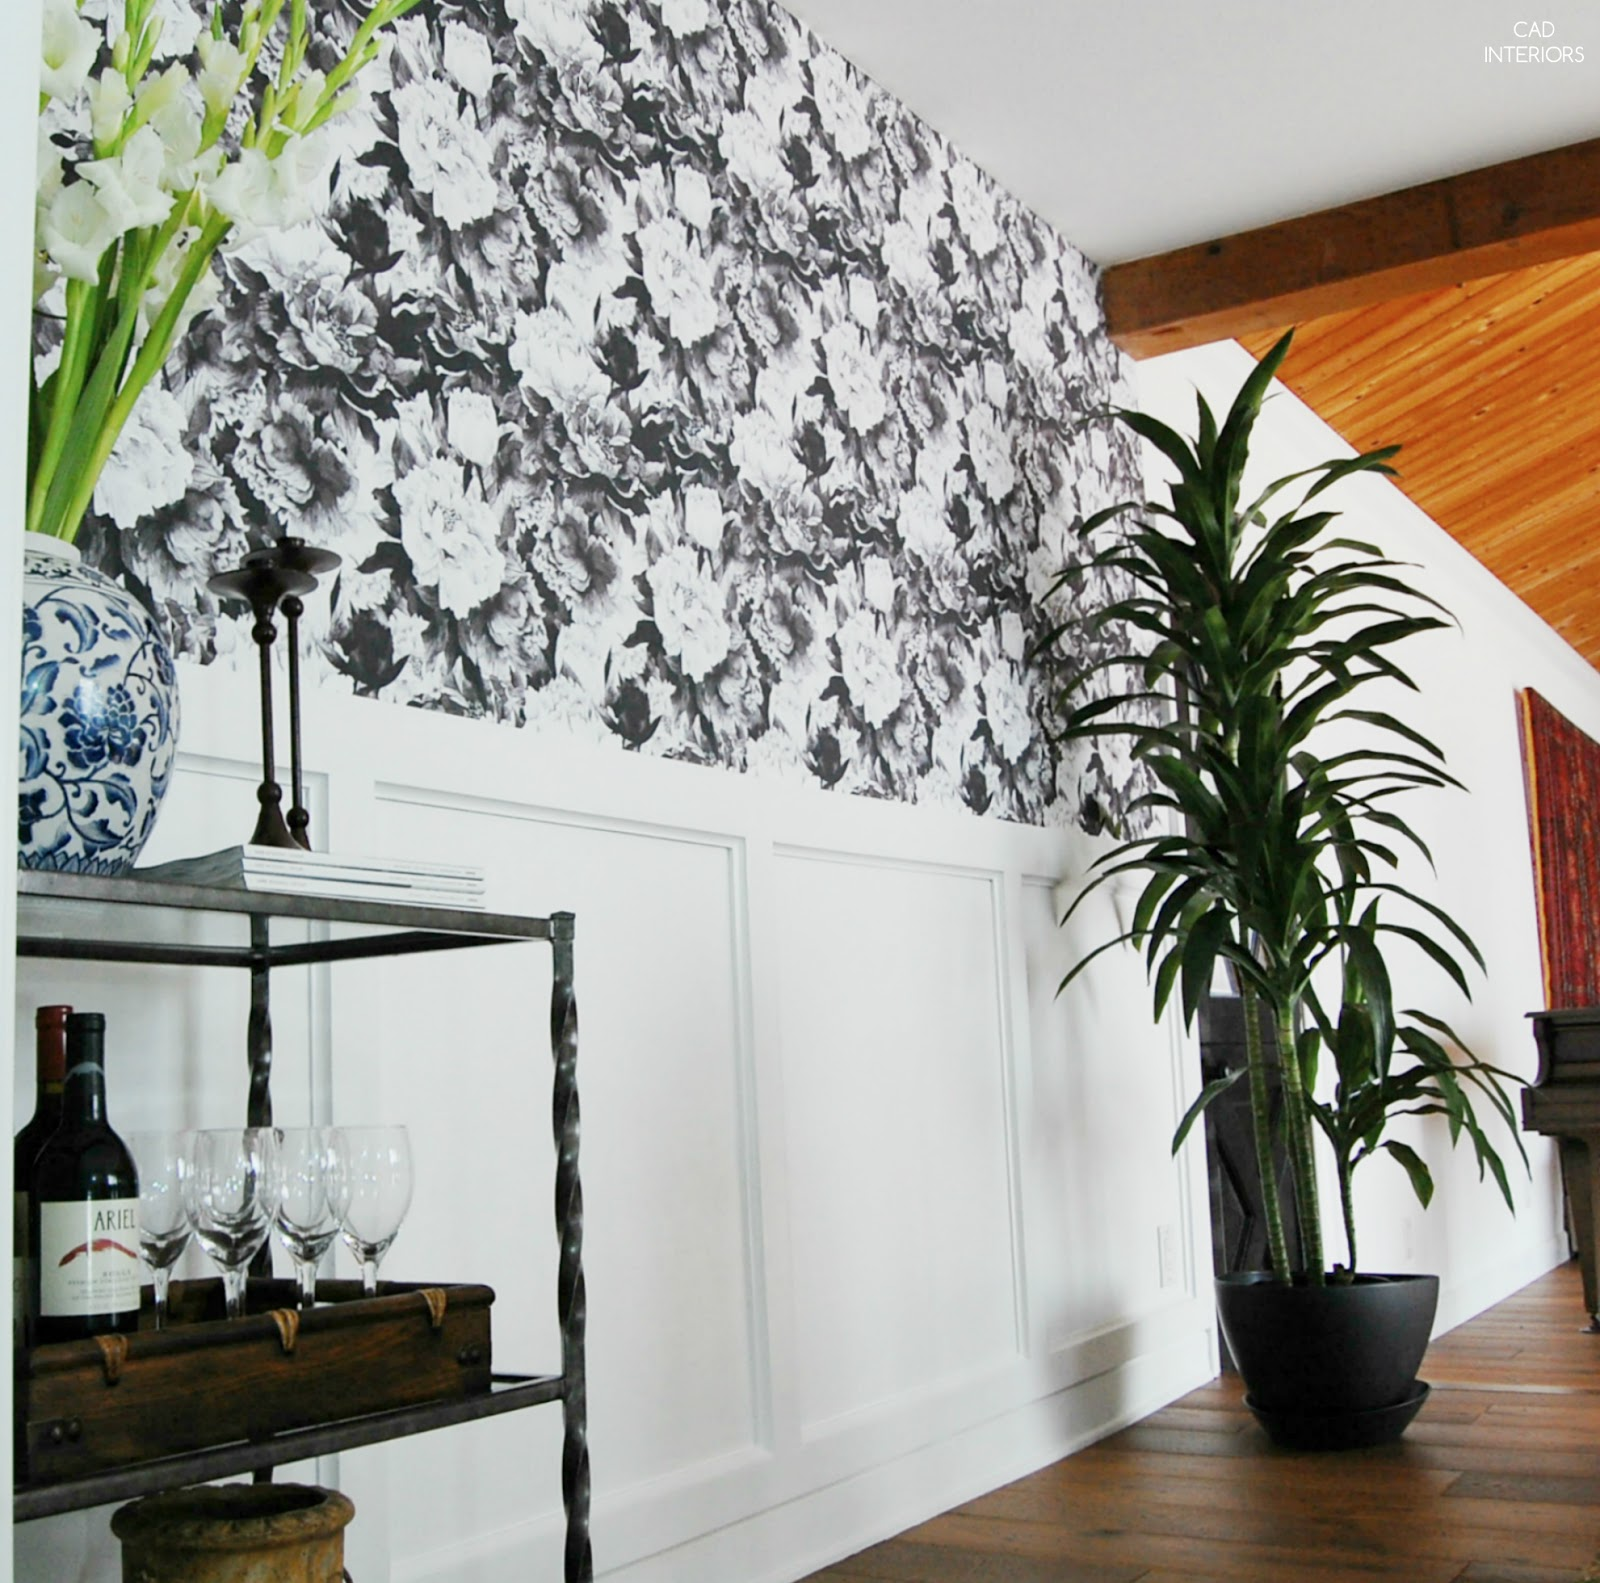 cad interiors affordable stylish interiors cad interiors dining room design makeover one room challenge interior design